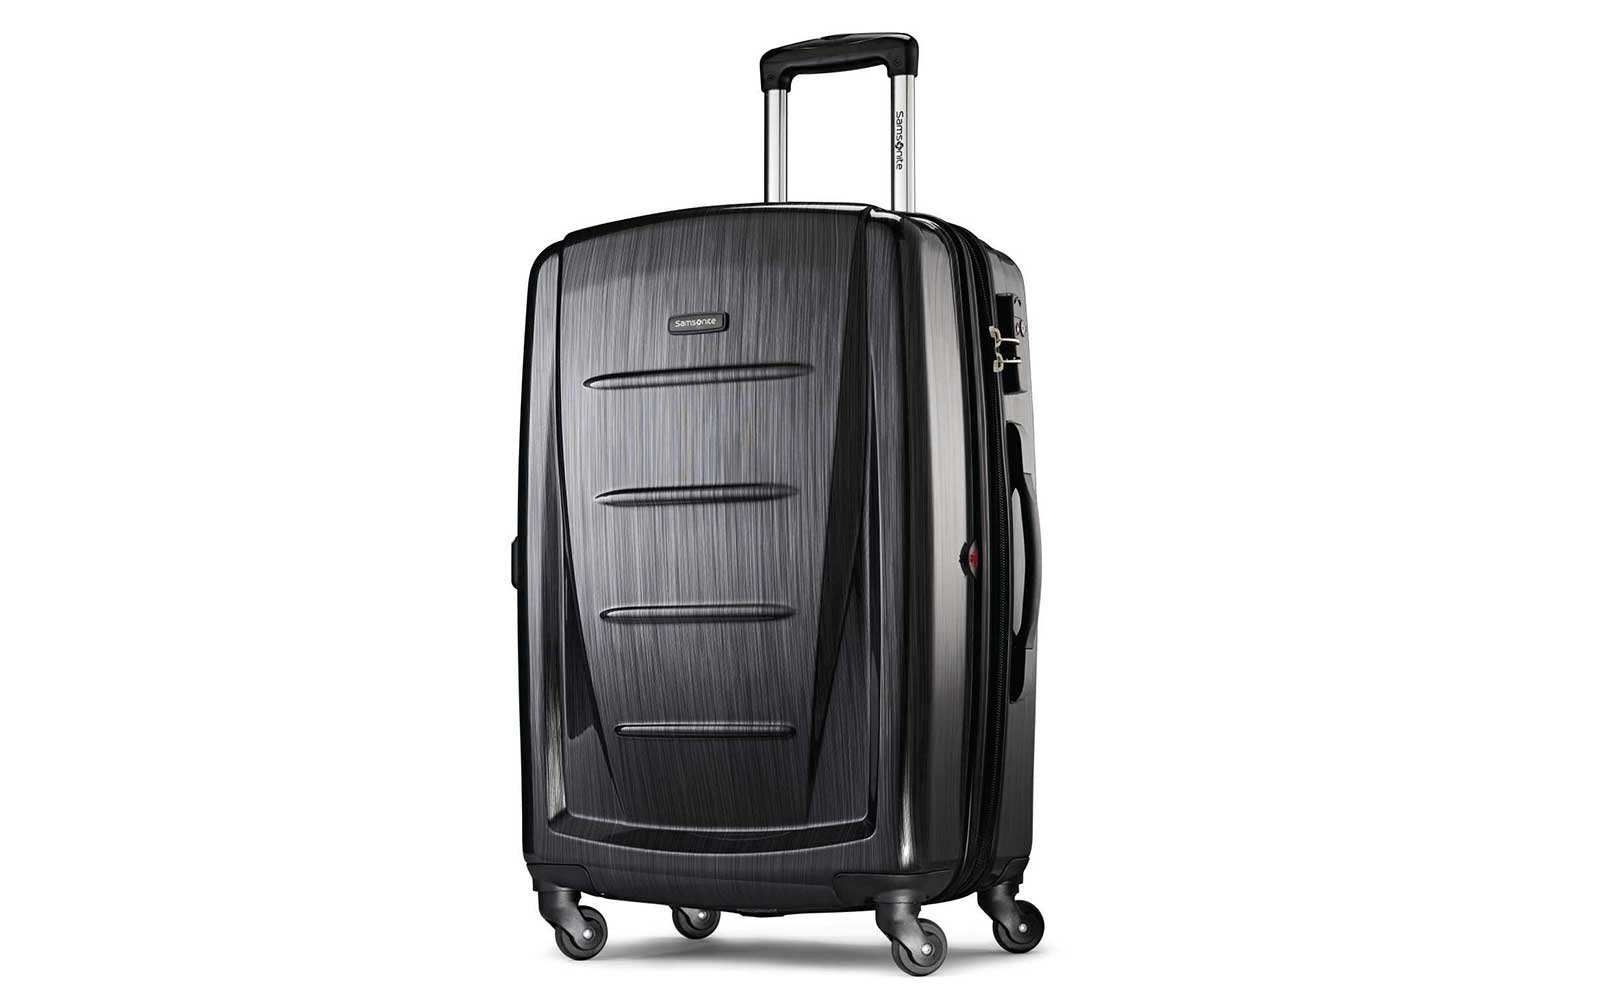 Samsonite Winfield 2 Hardside 28-inch Luggage